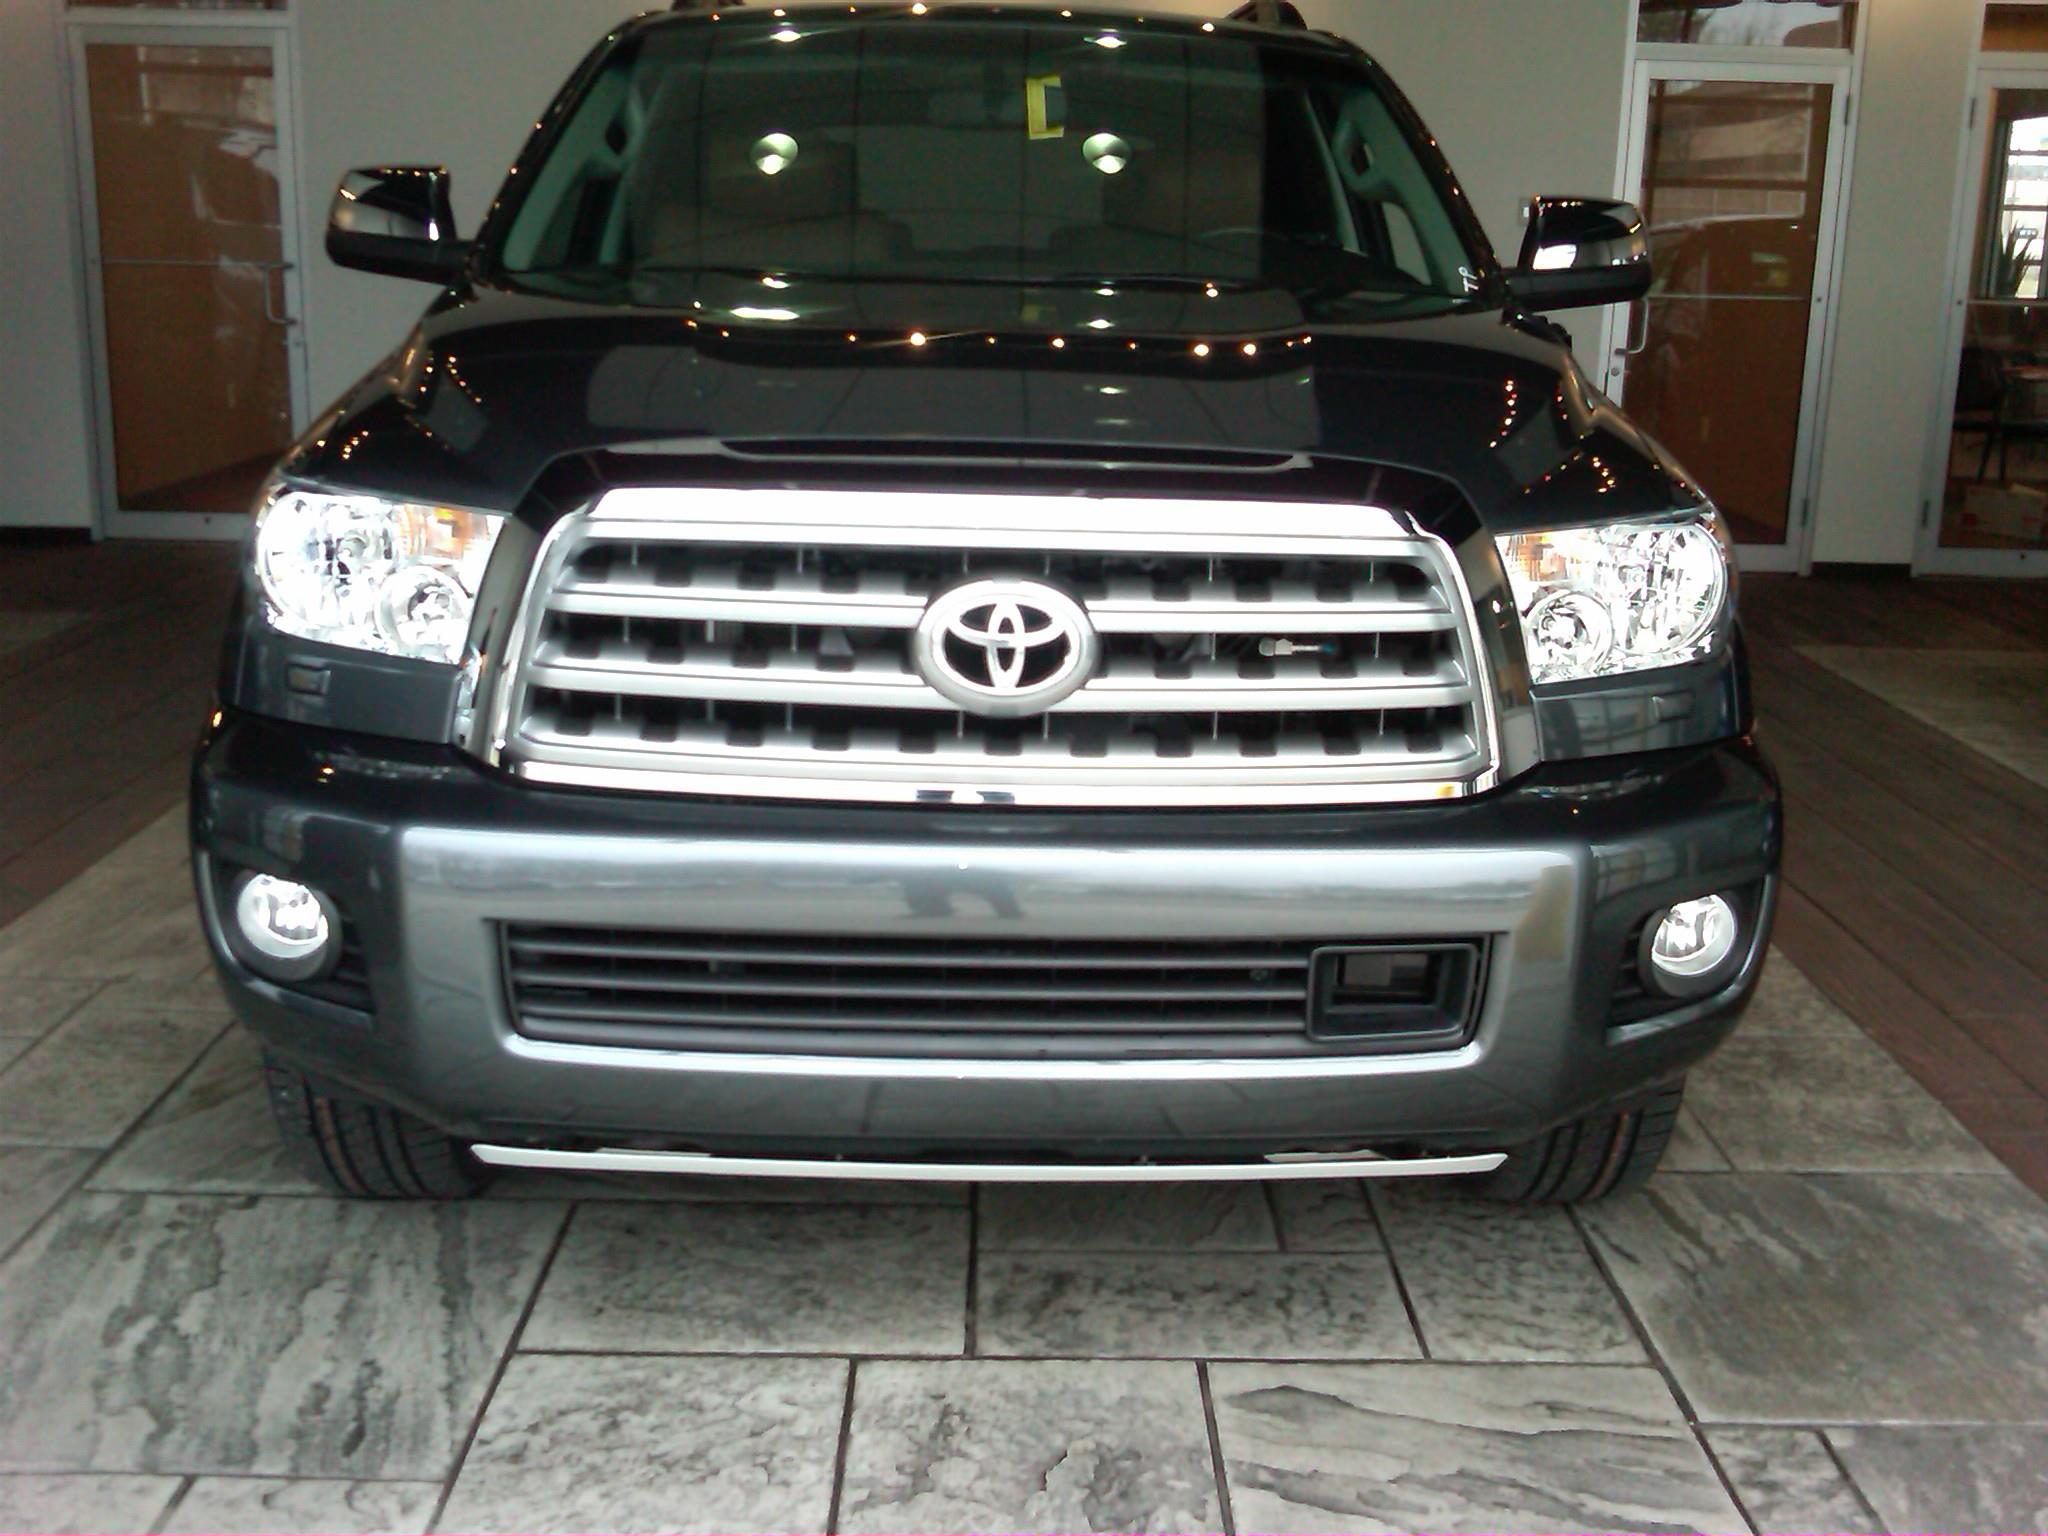 Toyota Tundra Gets Paint Protection Film